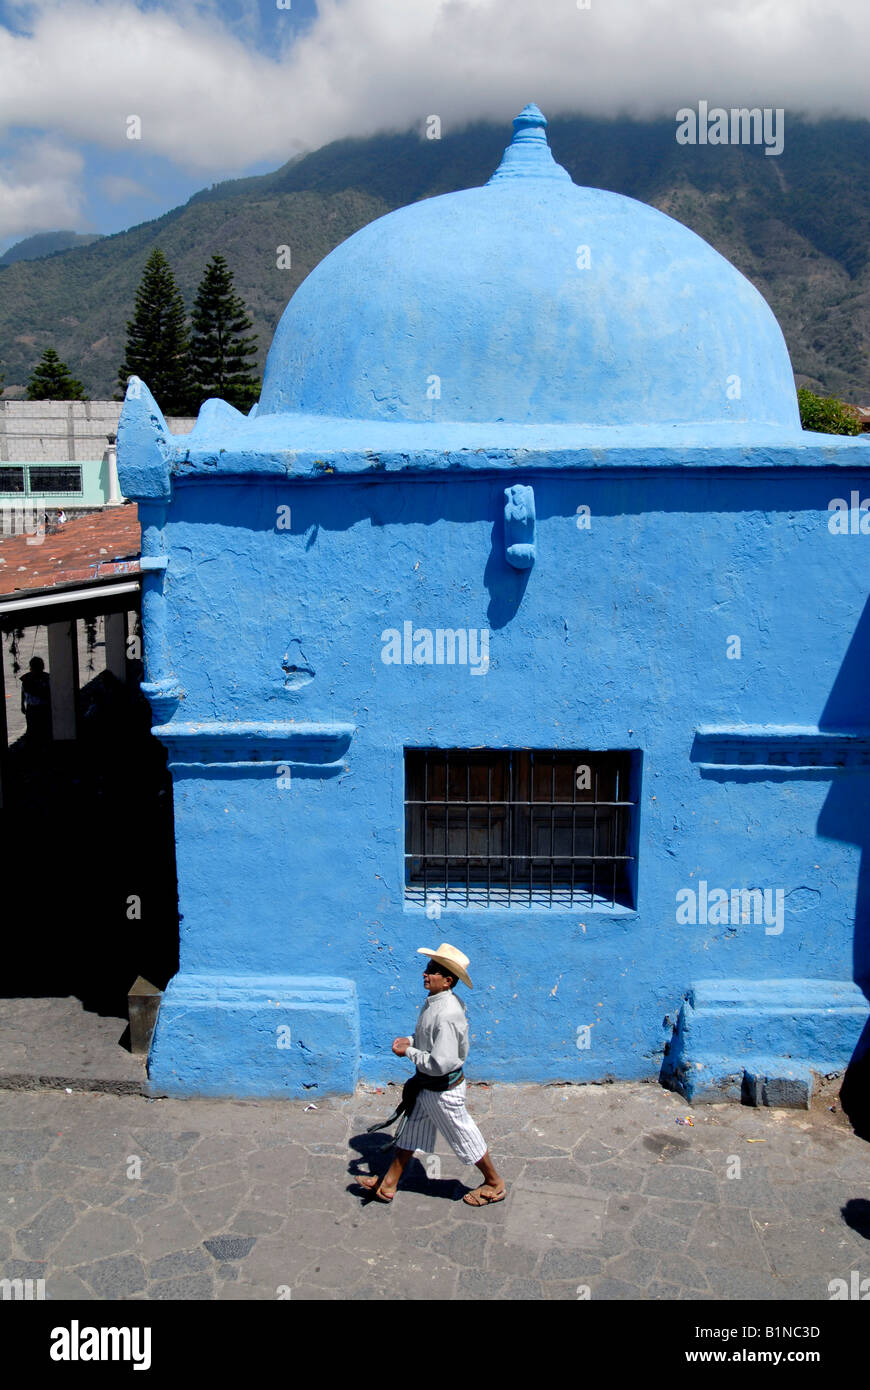 GUATEMALA NATIVE QUICHE MAN WALKING IN THE COLONIAL STREETS OF SANTIAGO ATITLAN Photo Julio Etchart - Stock Image